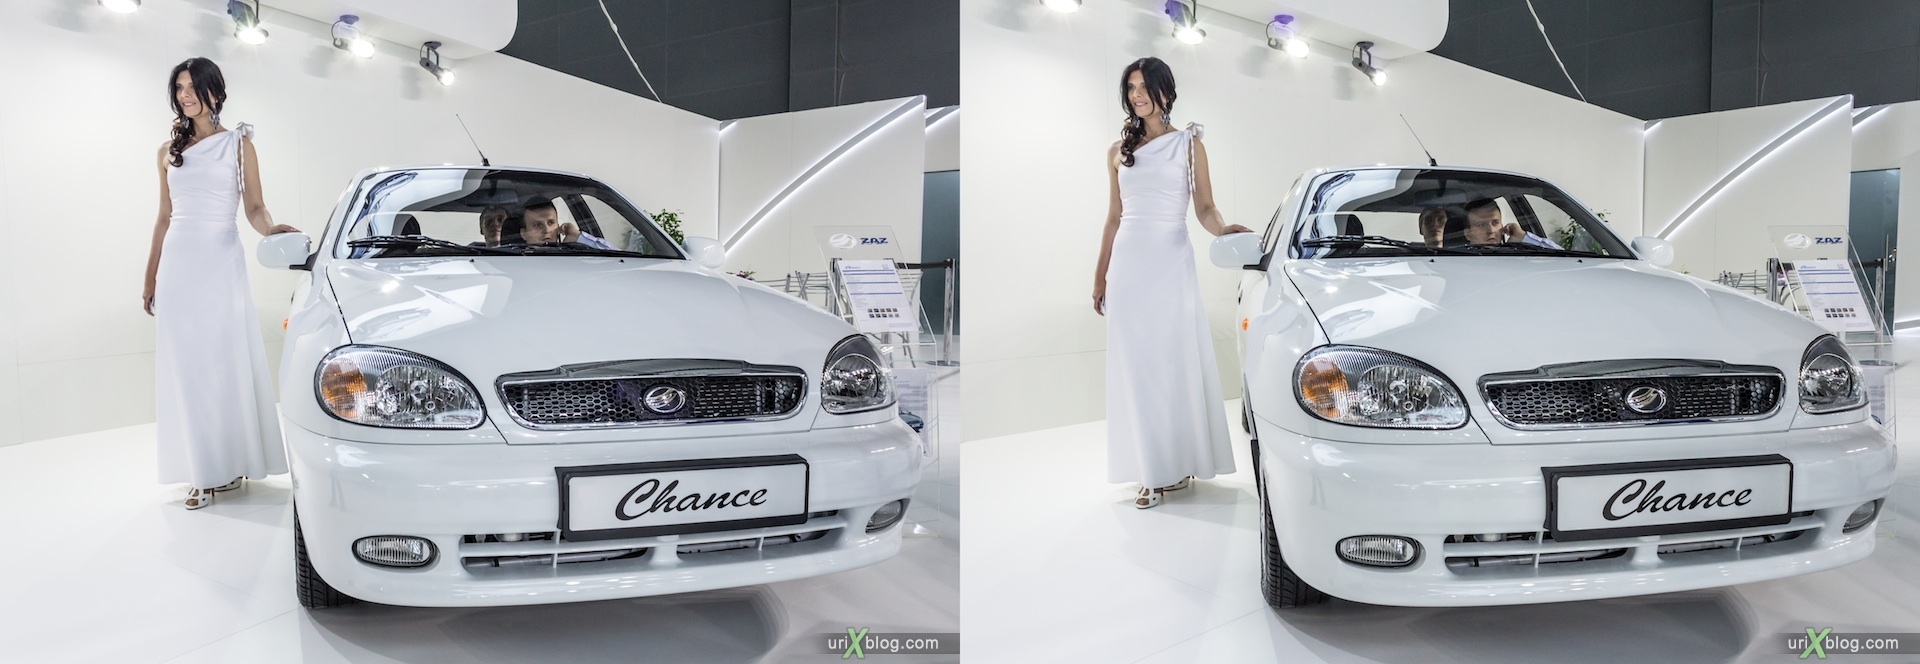 2012, ZAZ Chance, girl, model, Moscow International Automobile Salon, auto show, 3D, stereo pair, cross-eyed, crossview